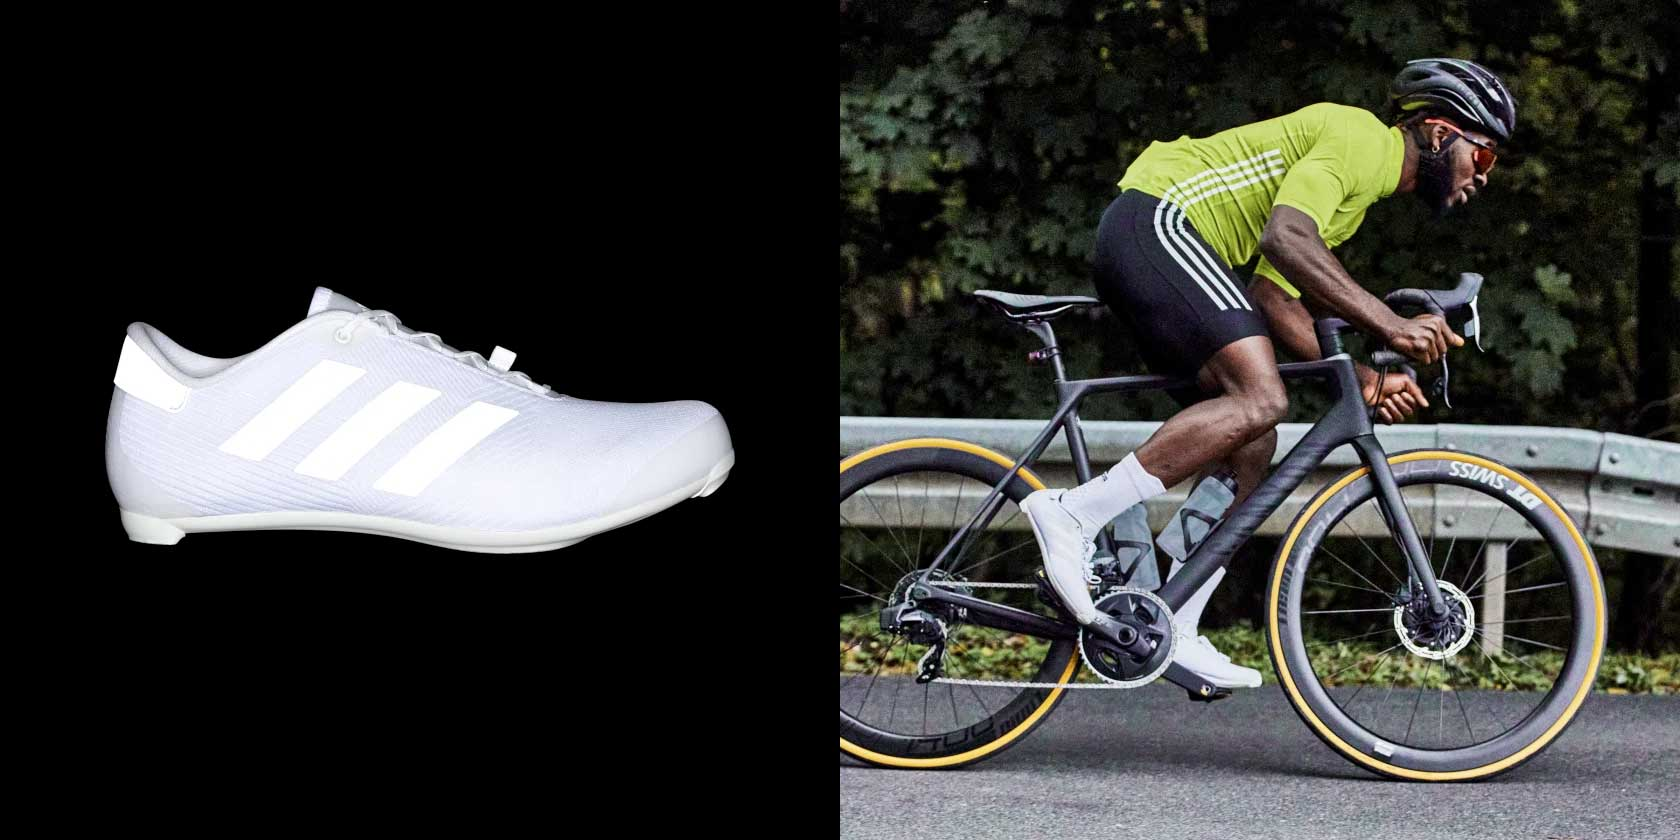 adidas The Road Cycling Shoes - White